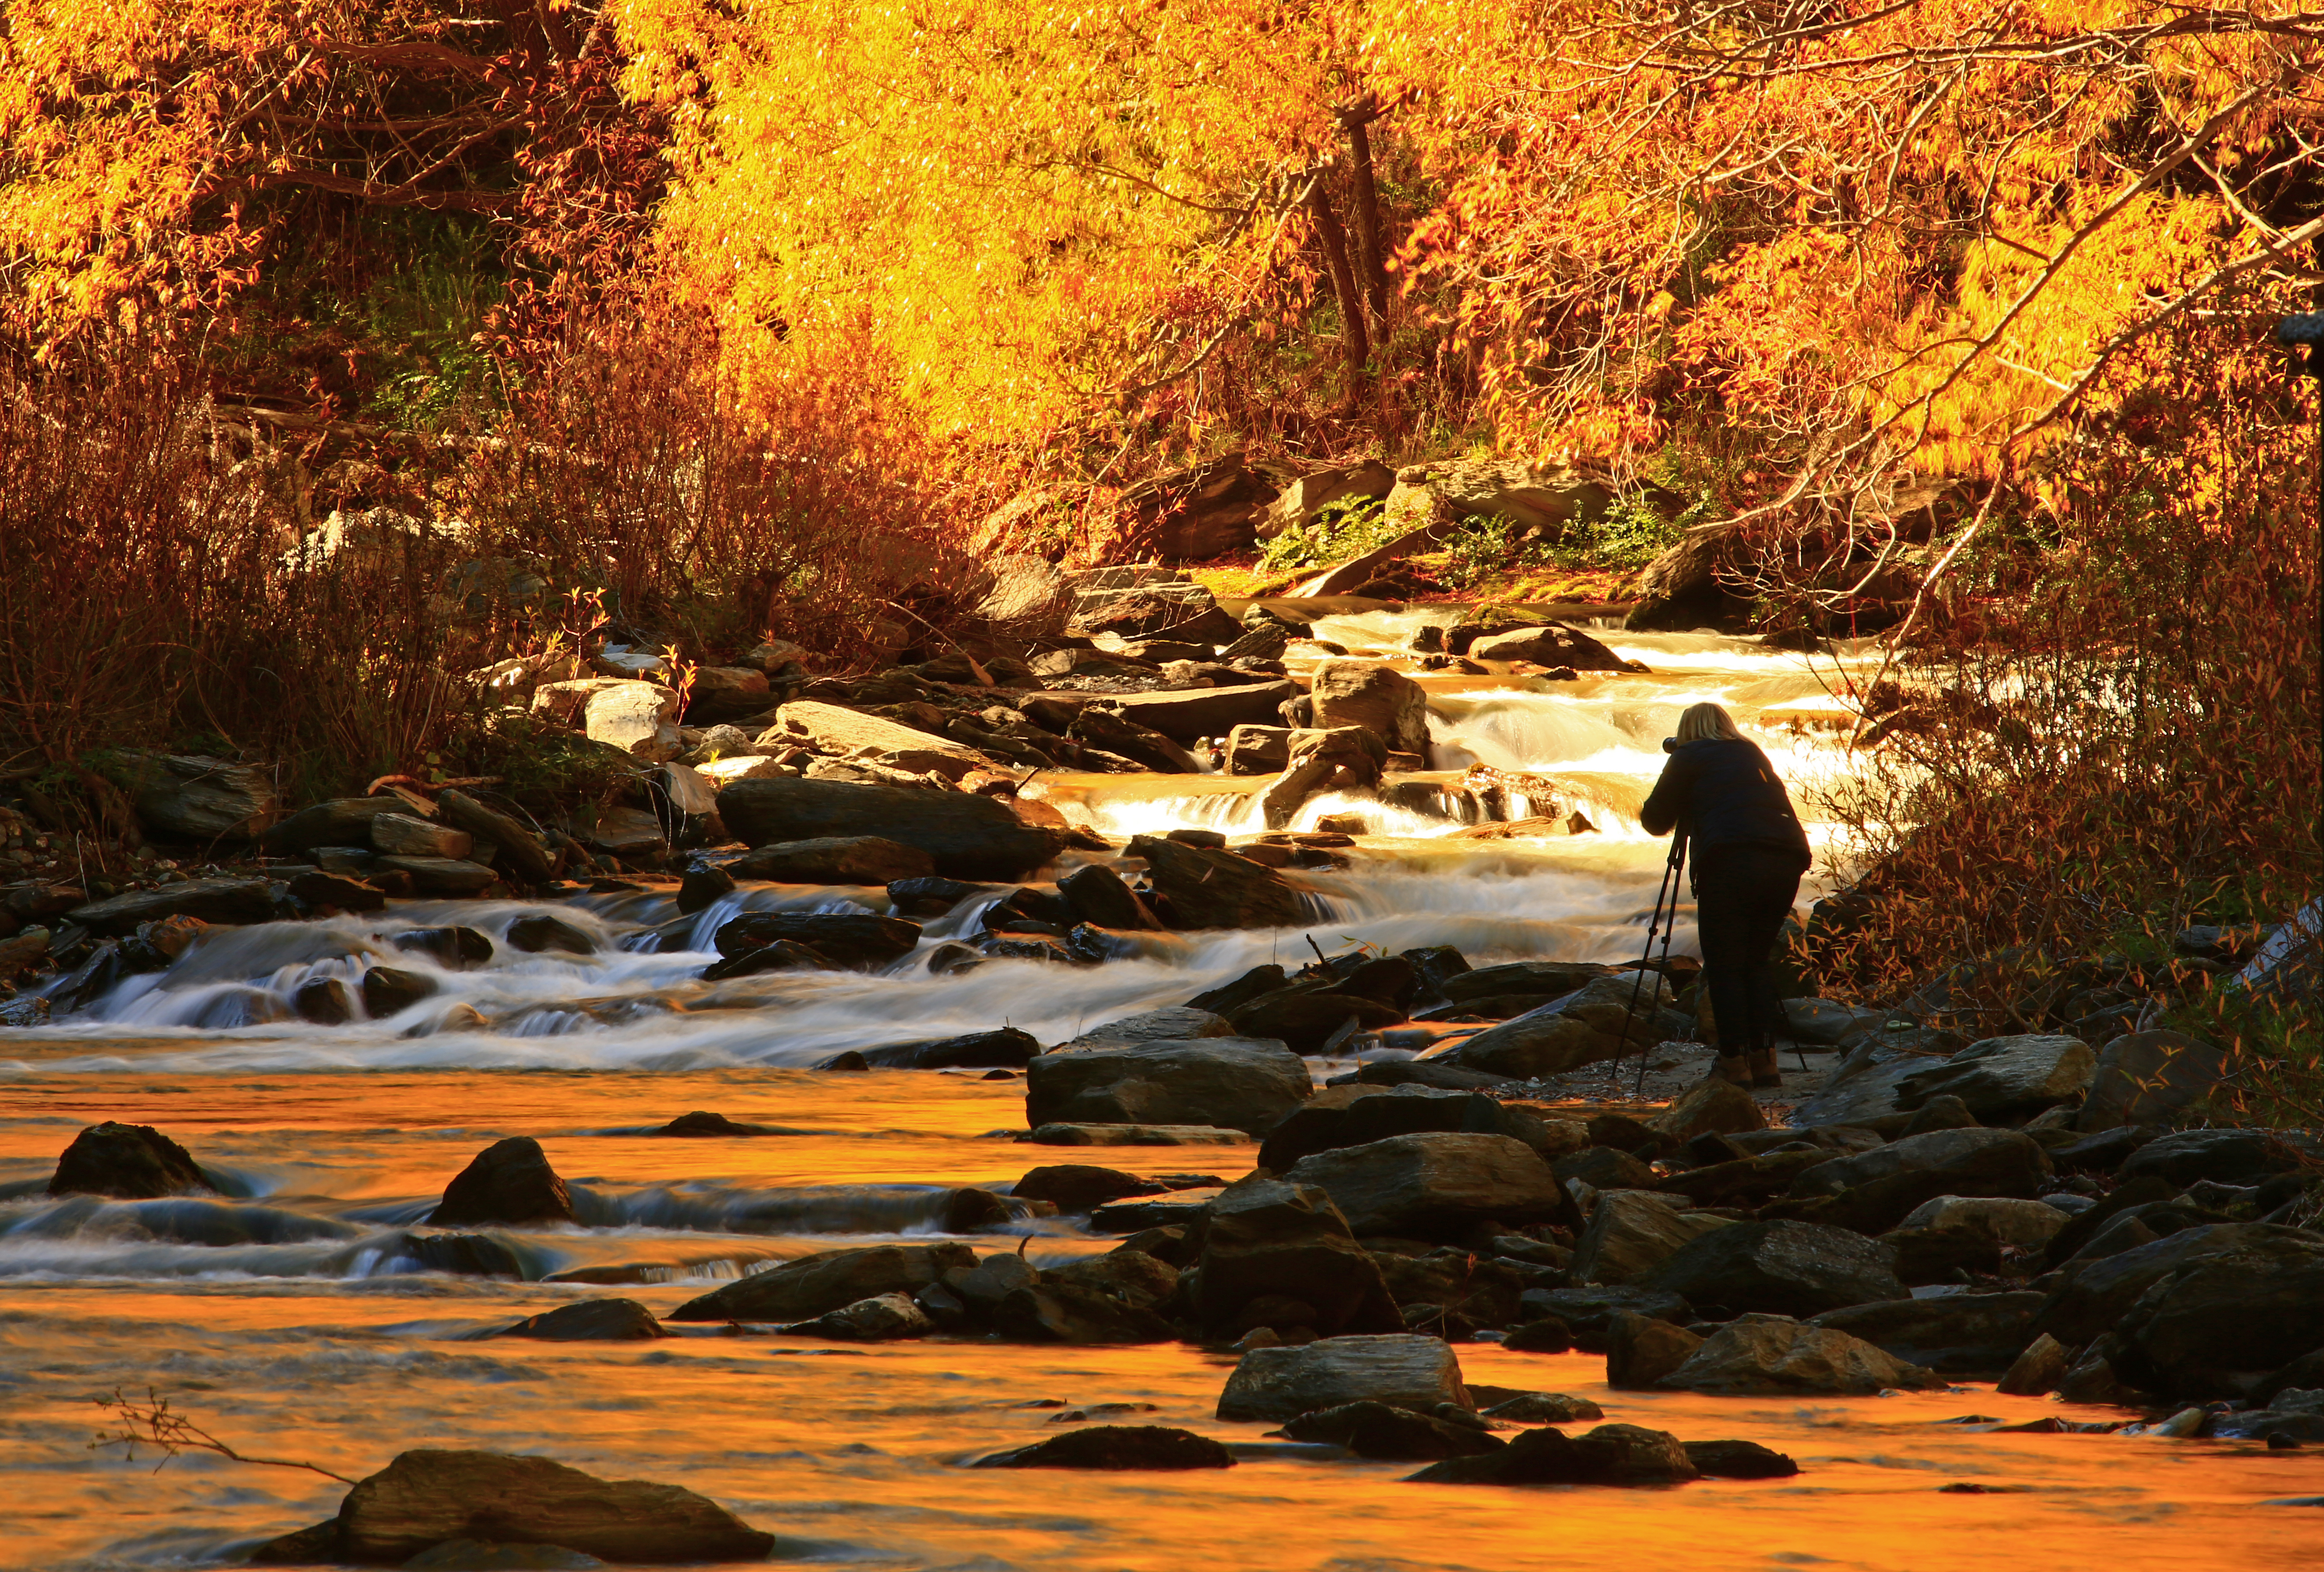 Photographing the Arrow River in Autumn 1